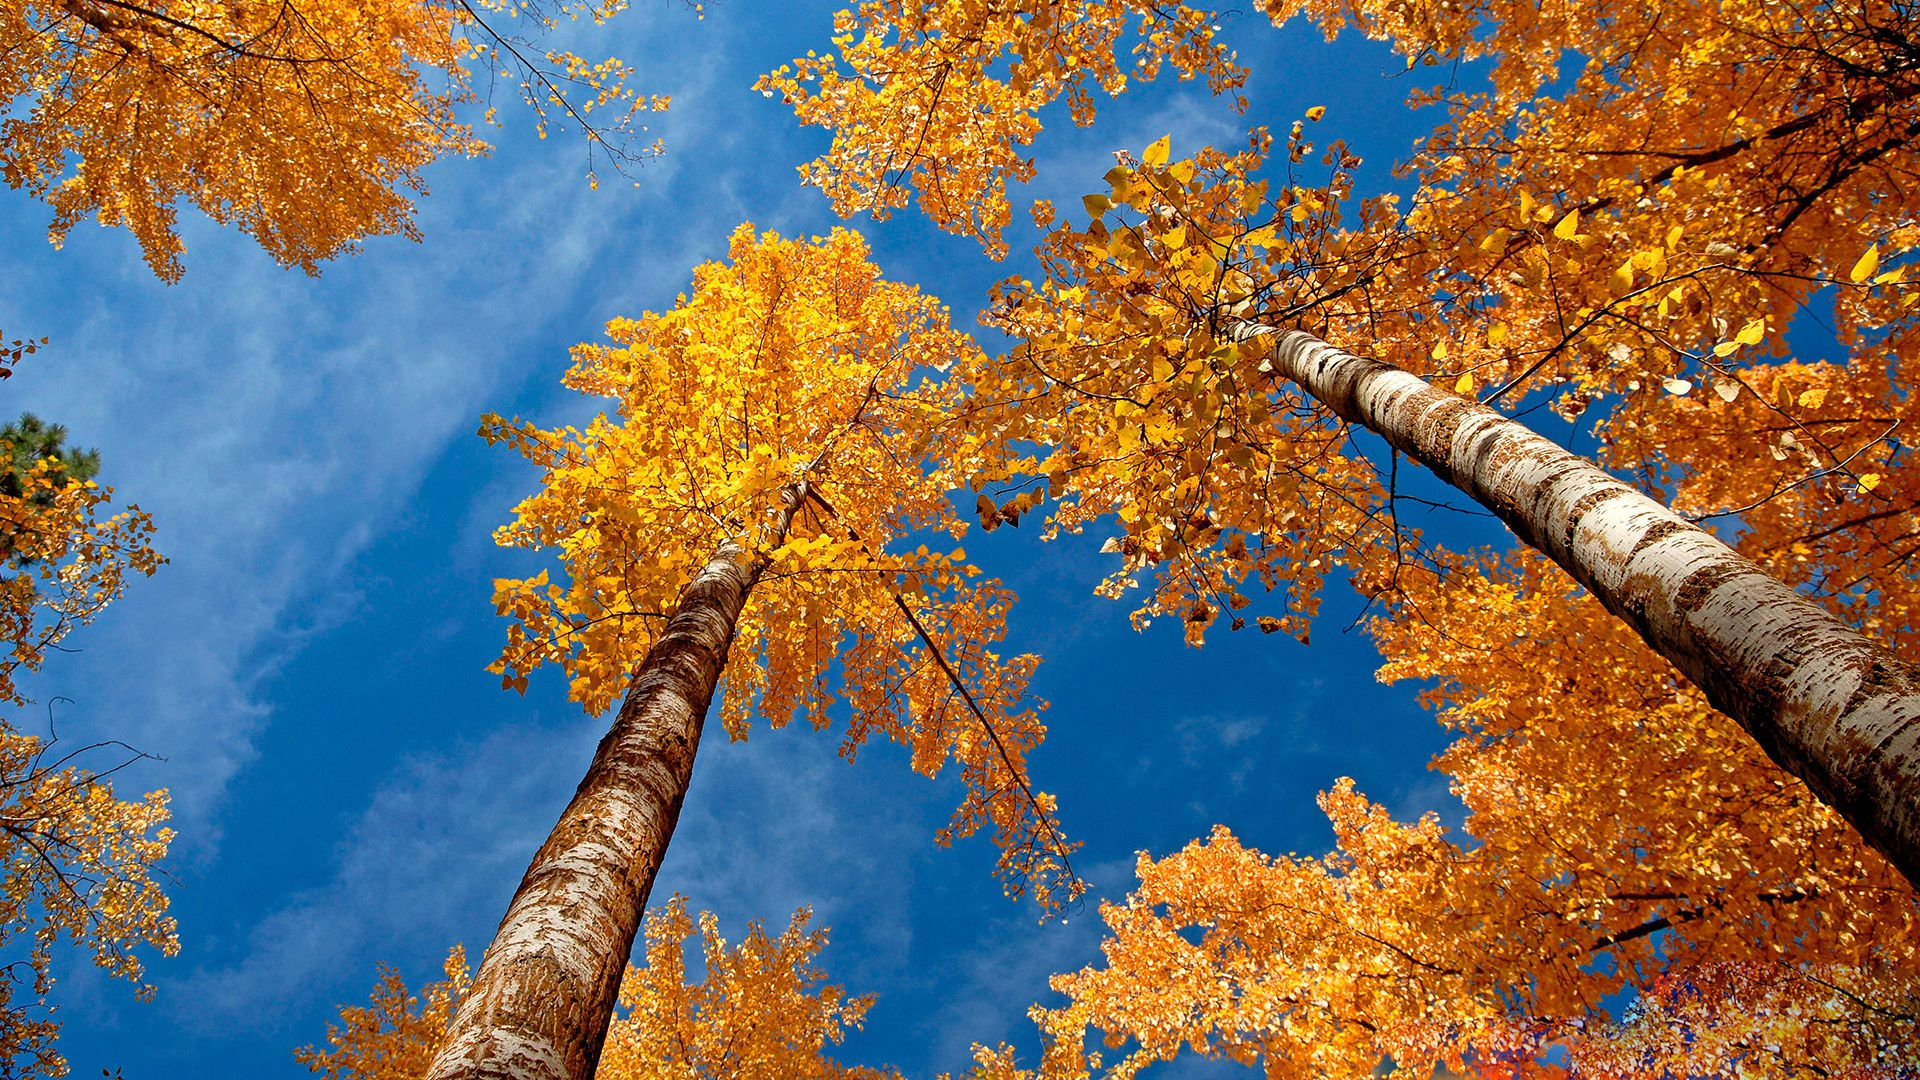 Free autumn wallpaper featuring an upward view of yellow-leafed trees against a blue sky.